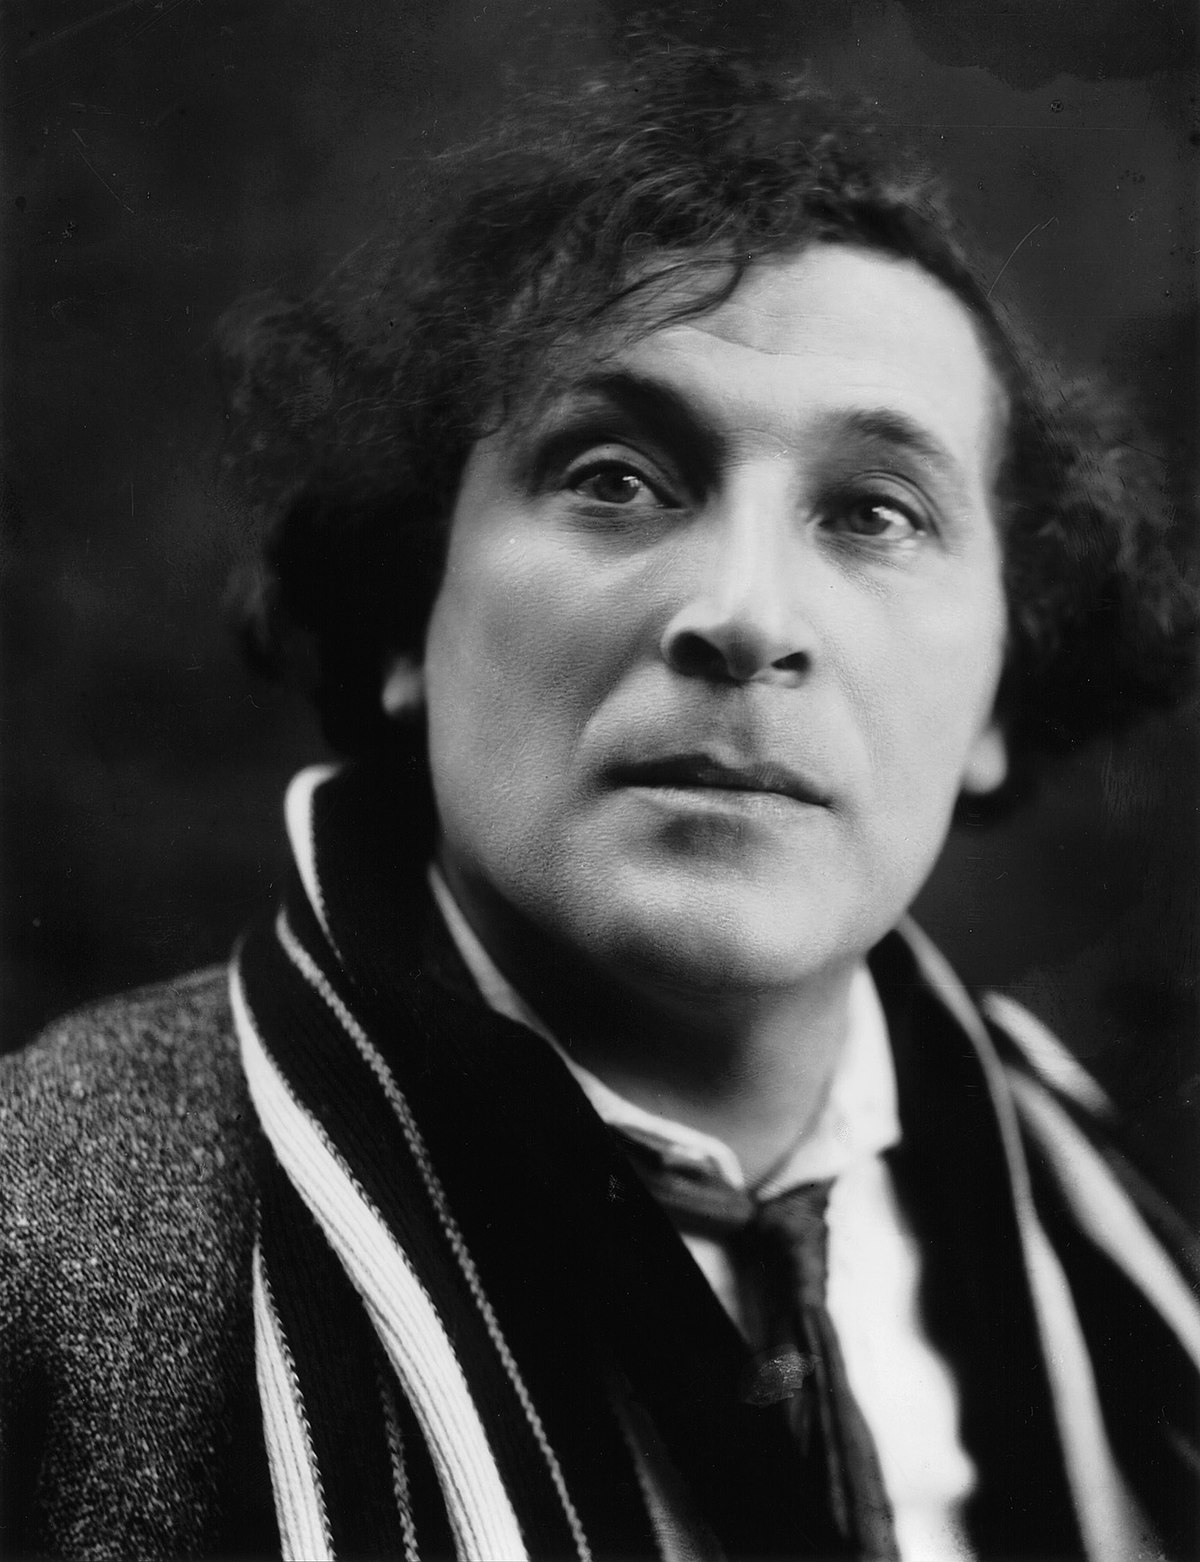 marc chagall happy birthday : marc chagall youtube :  marc chagall zegar en 2020/2021